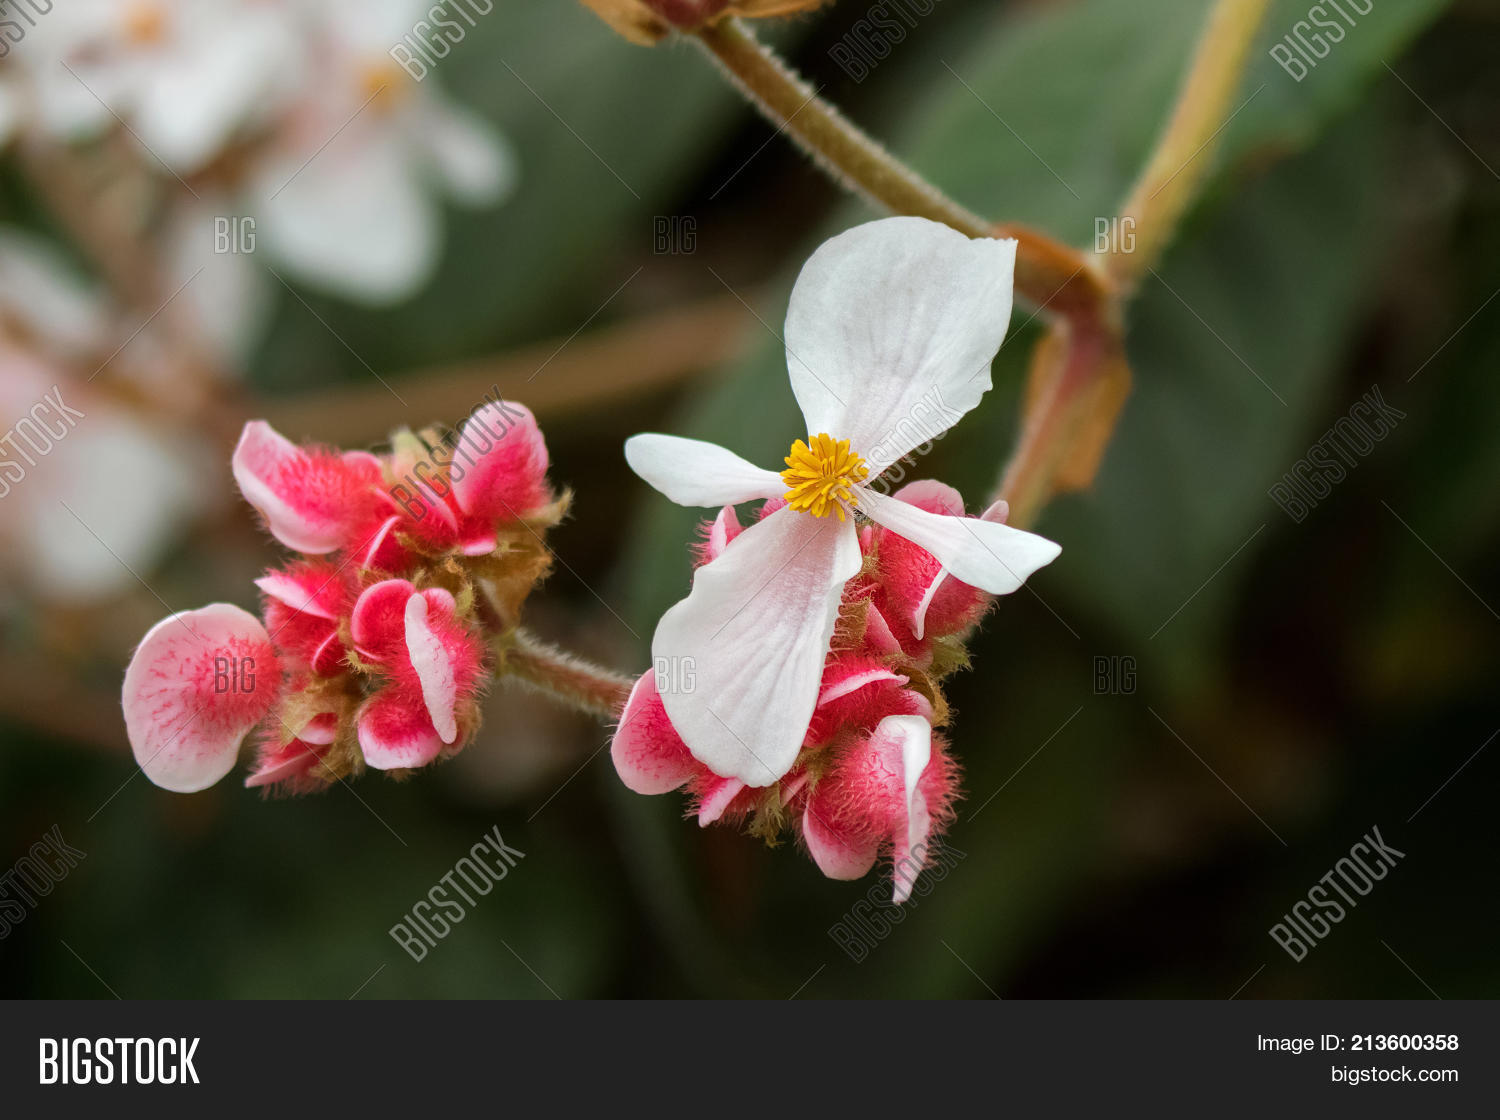 Closeup Begonia White Image Photo Free Trial Bigstock